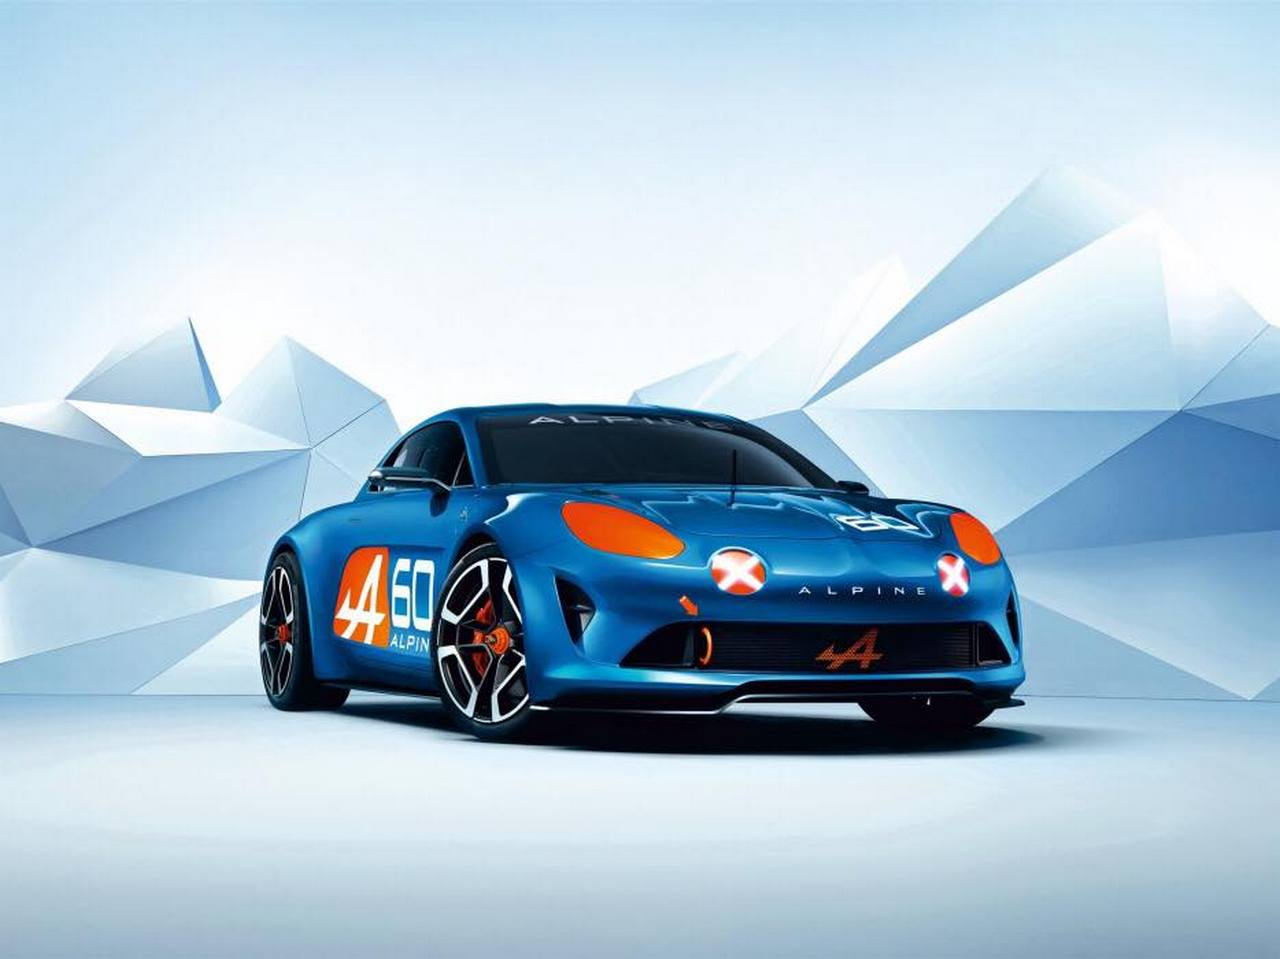 renault-alpine-celebration-concept_0-100-5